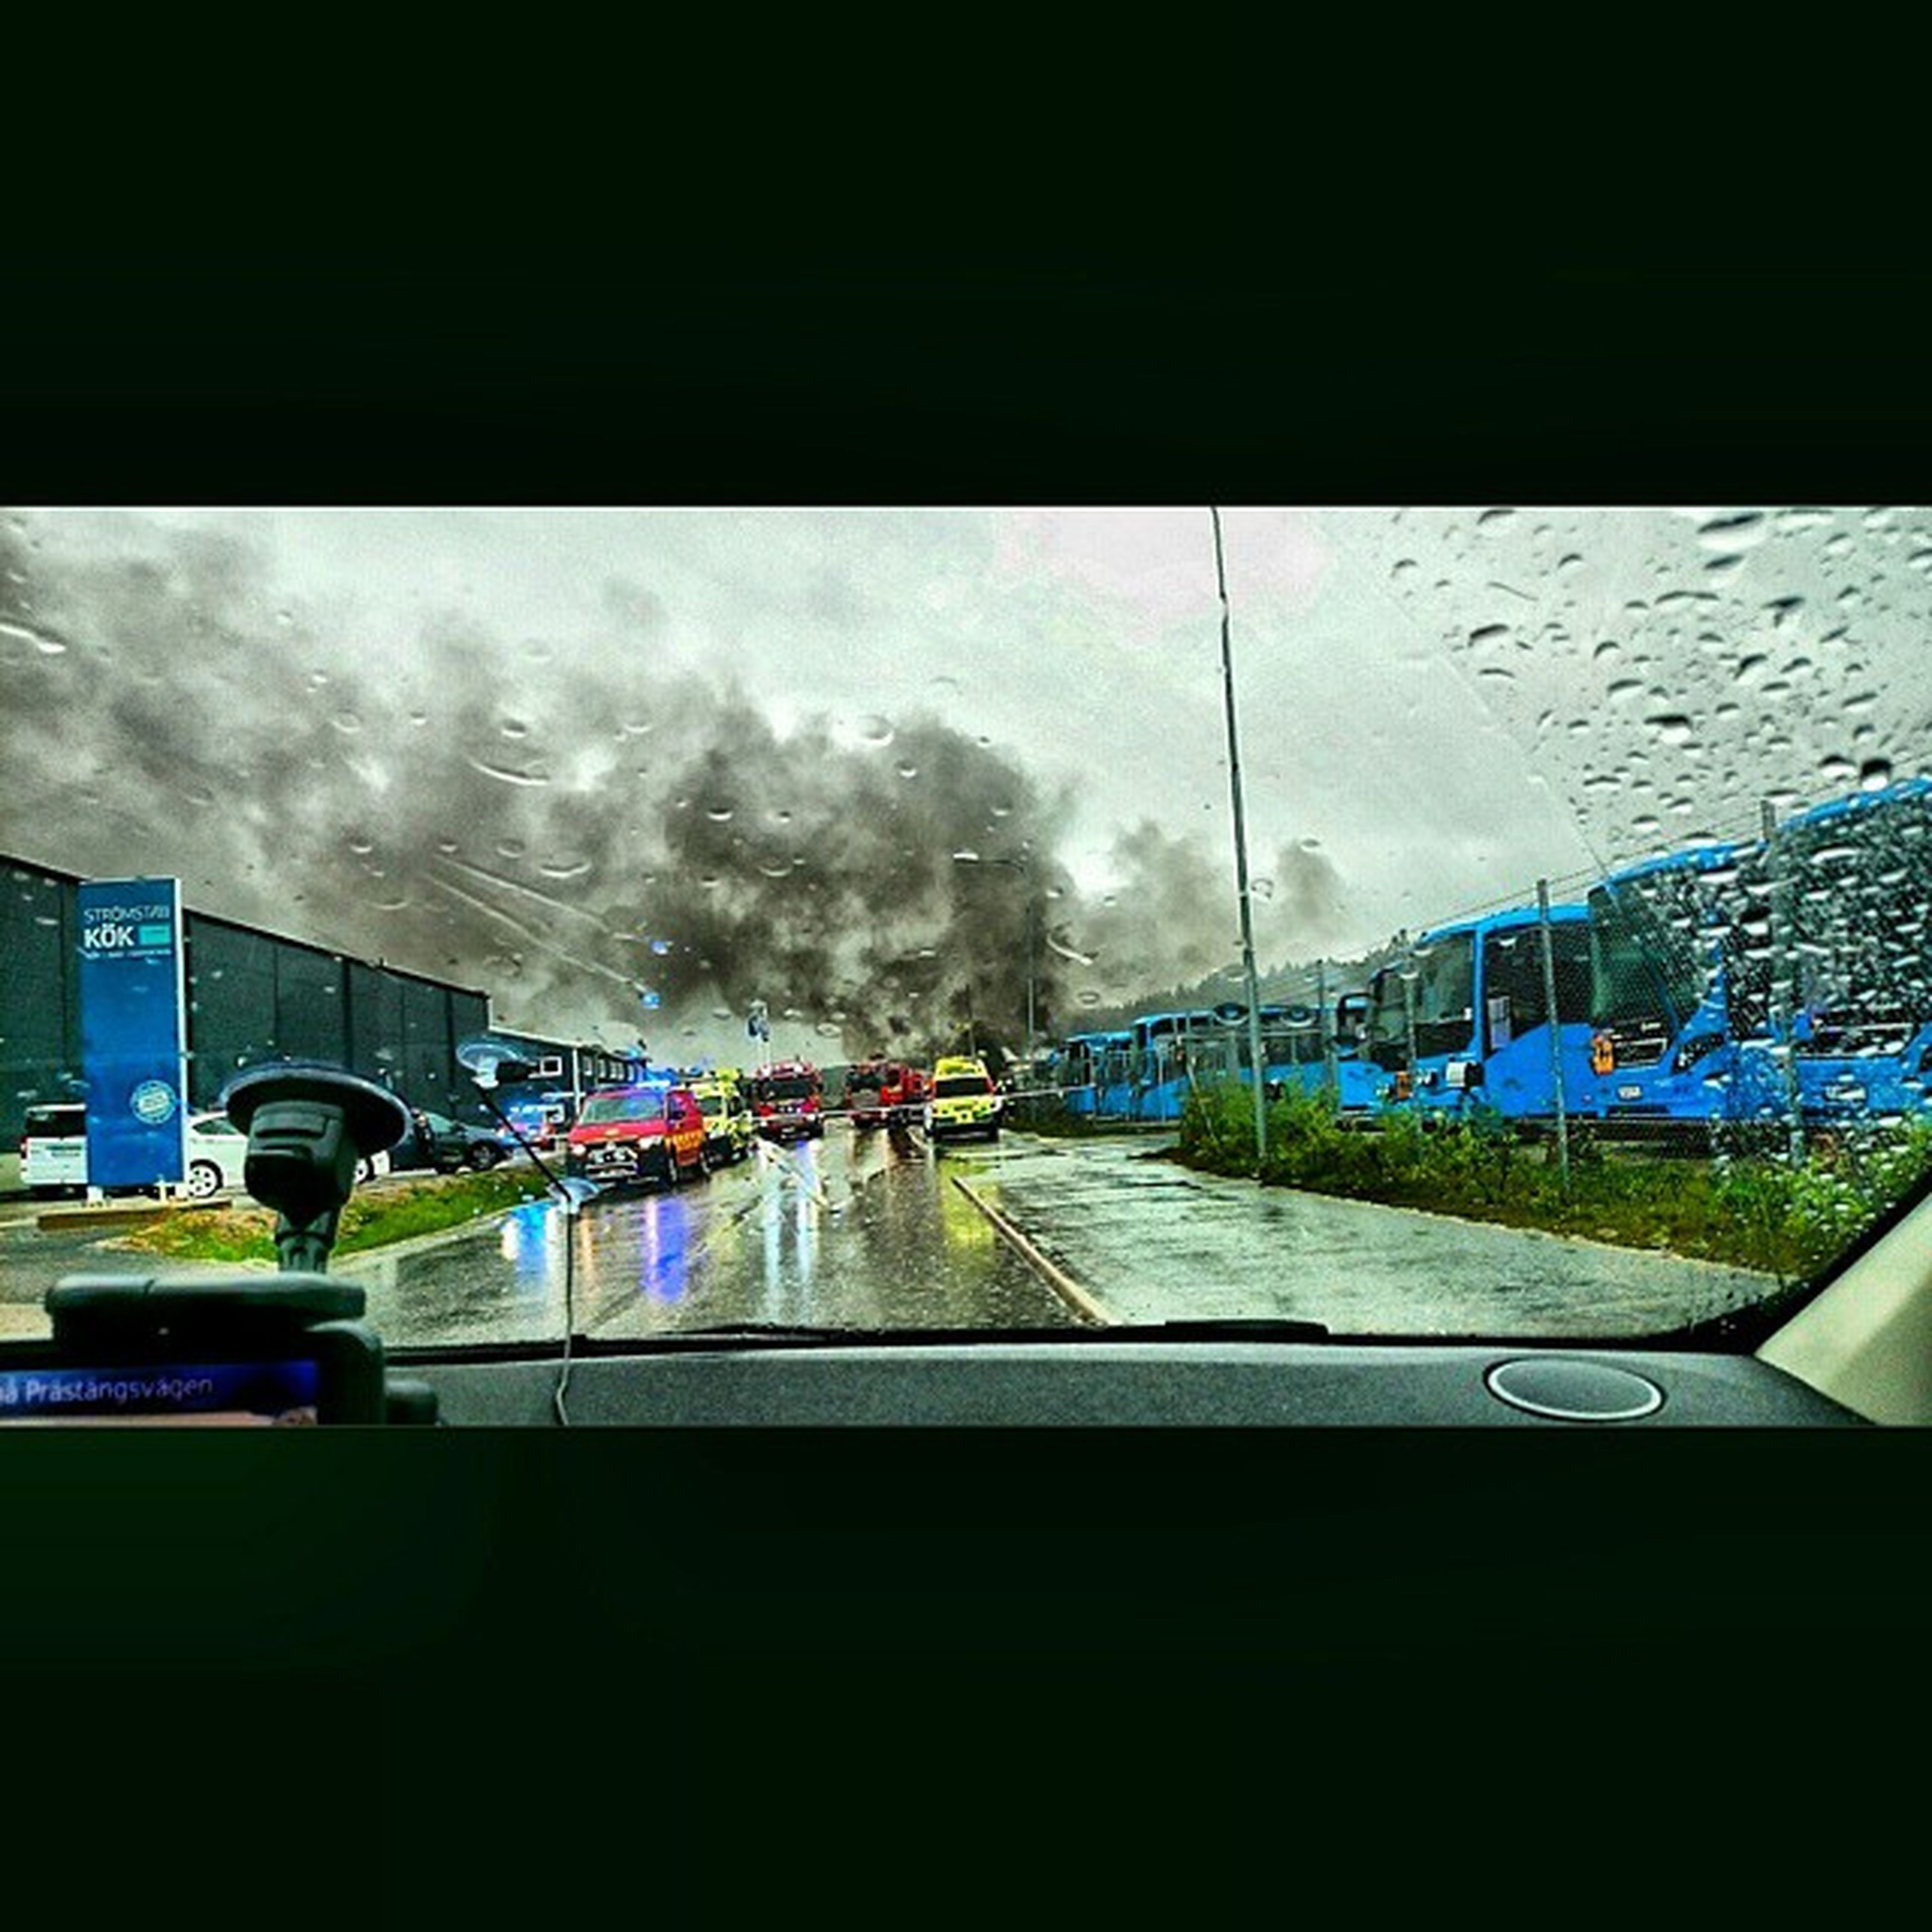 transportation, glass - material, transparent, vehicle interior, mode of transport, window, car, land vehicle, indoors, windshield, sky, road, car interior, rain, weather, wet, city, travel, looking through window, cloud - sky